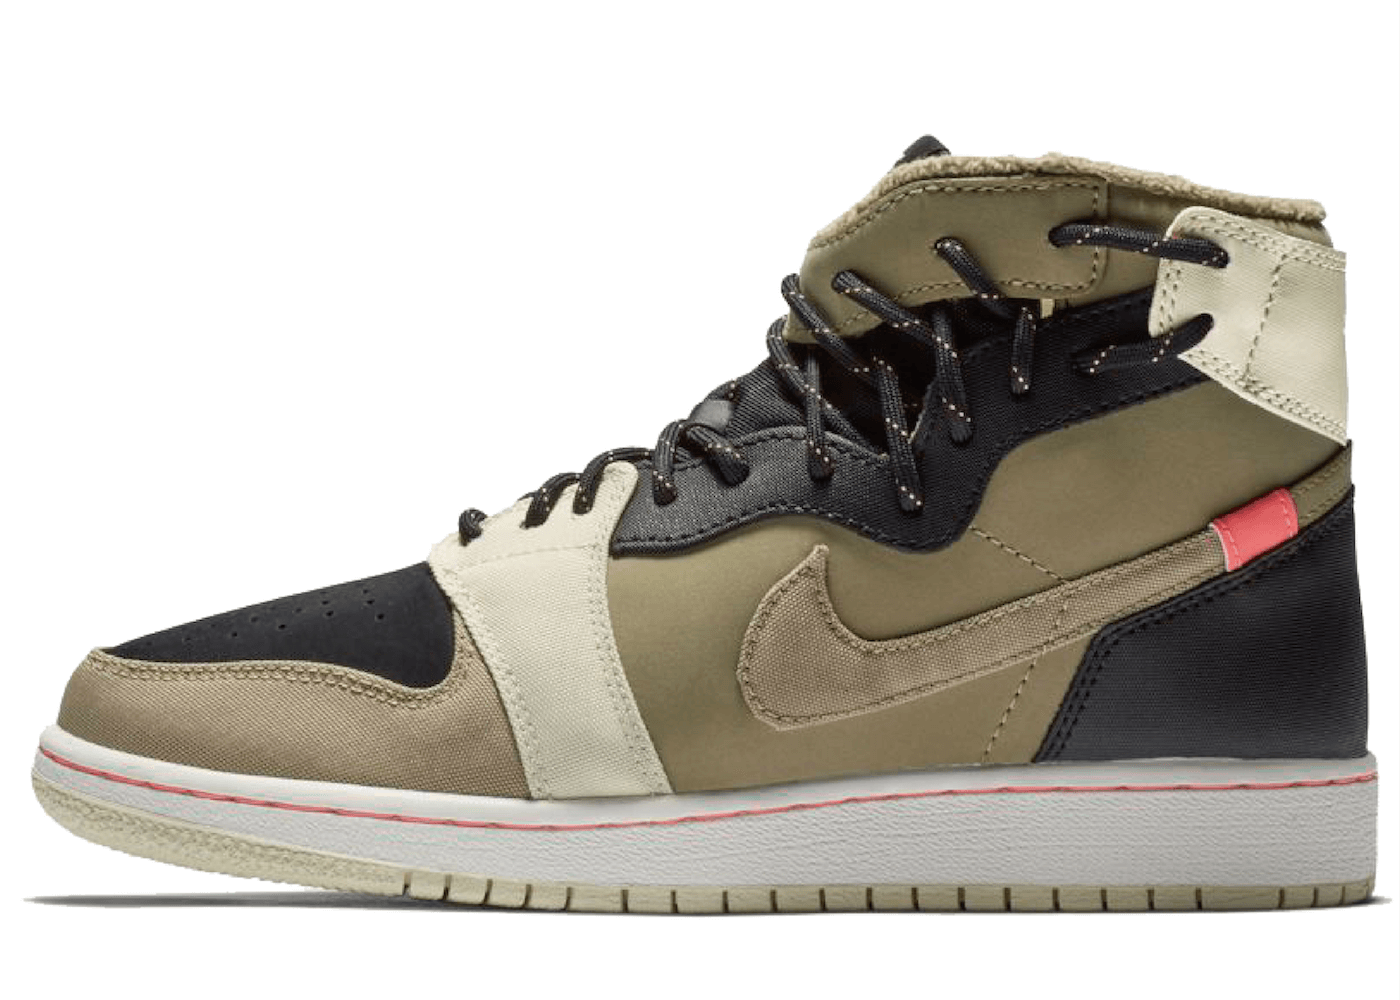 Nike Air Jordan 1 Rebel XX Utility Pack (W)の写真